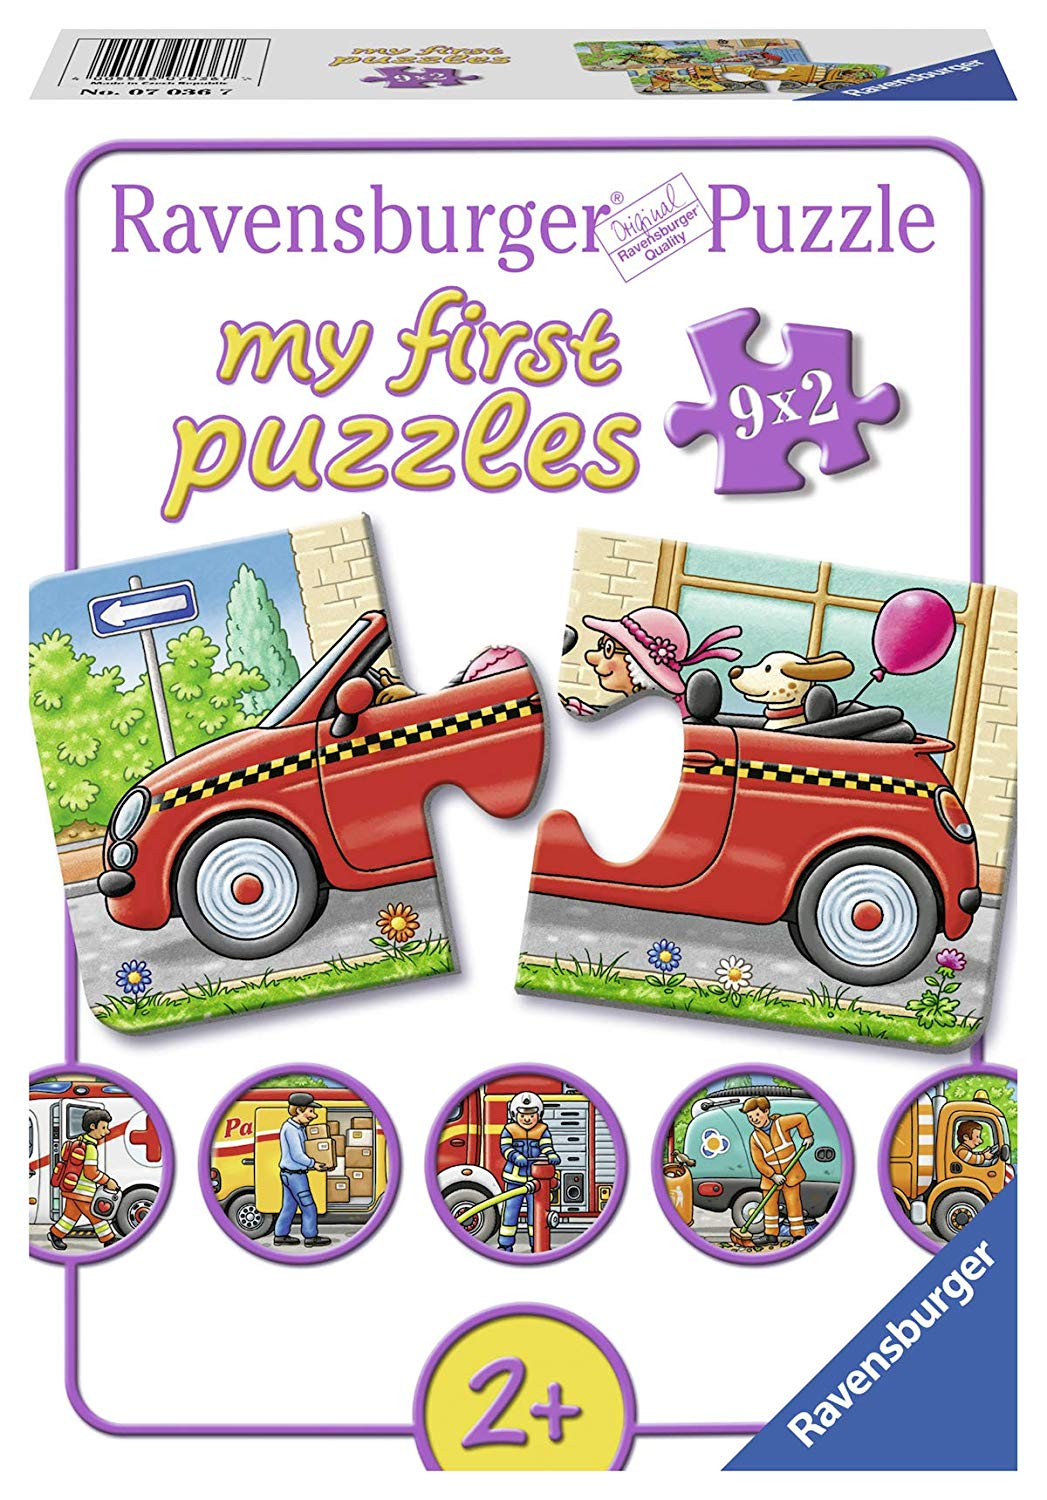 9-puzzles-my-first-puzzles